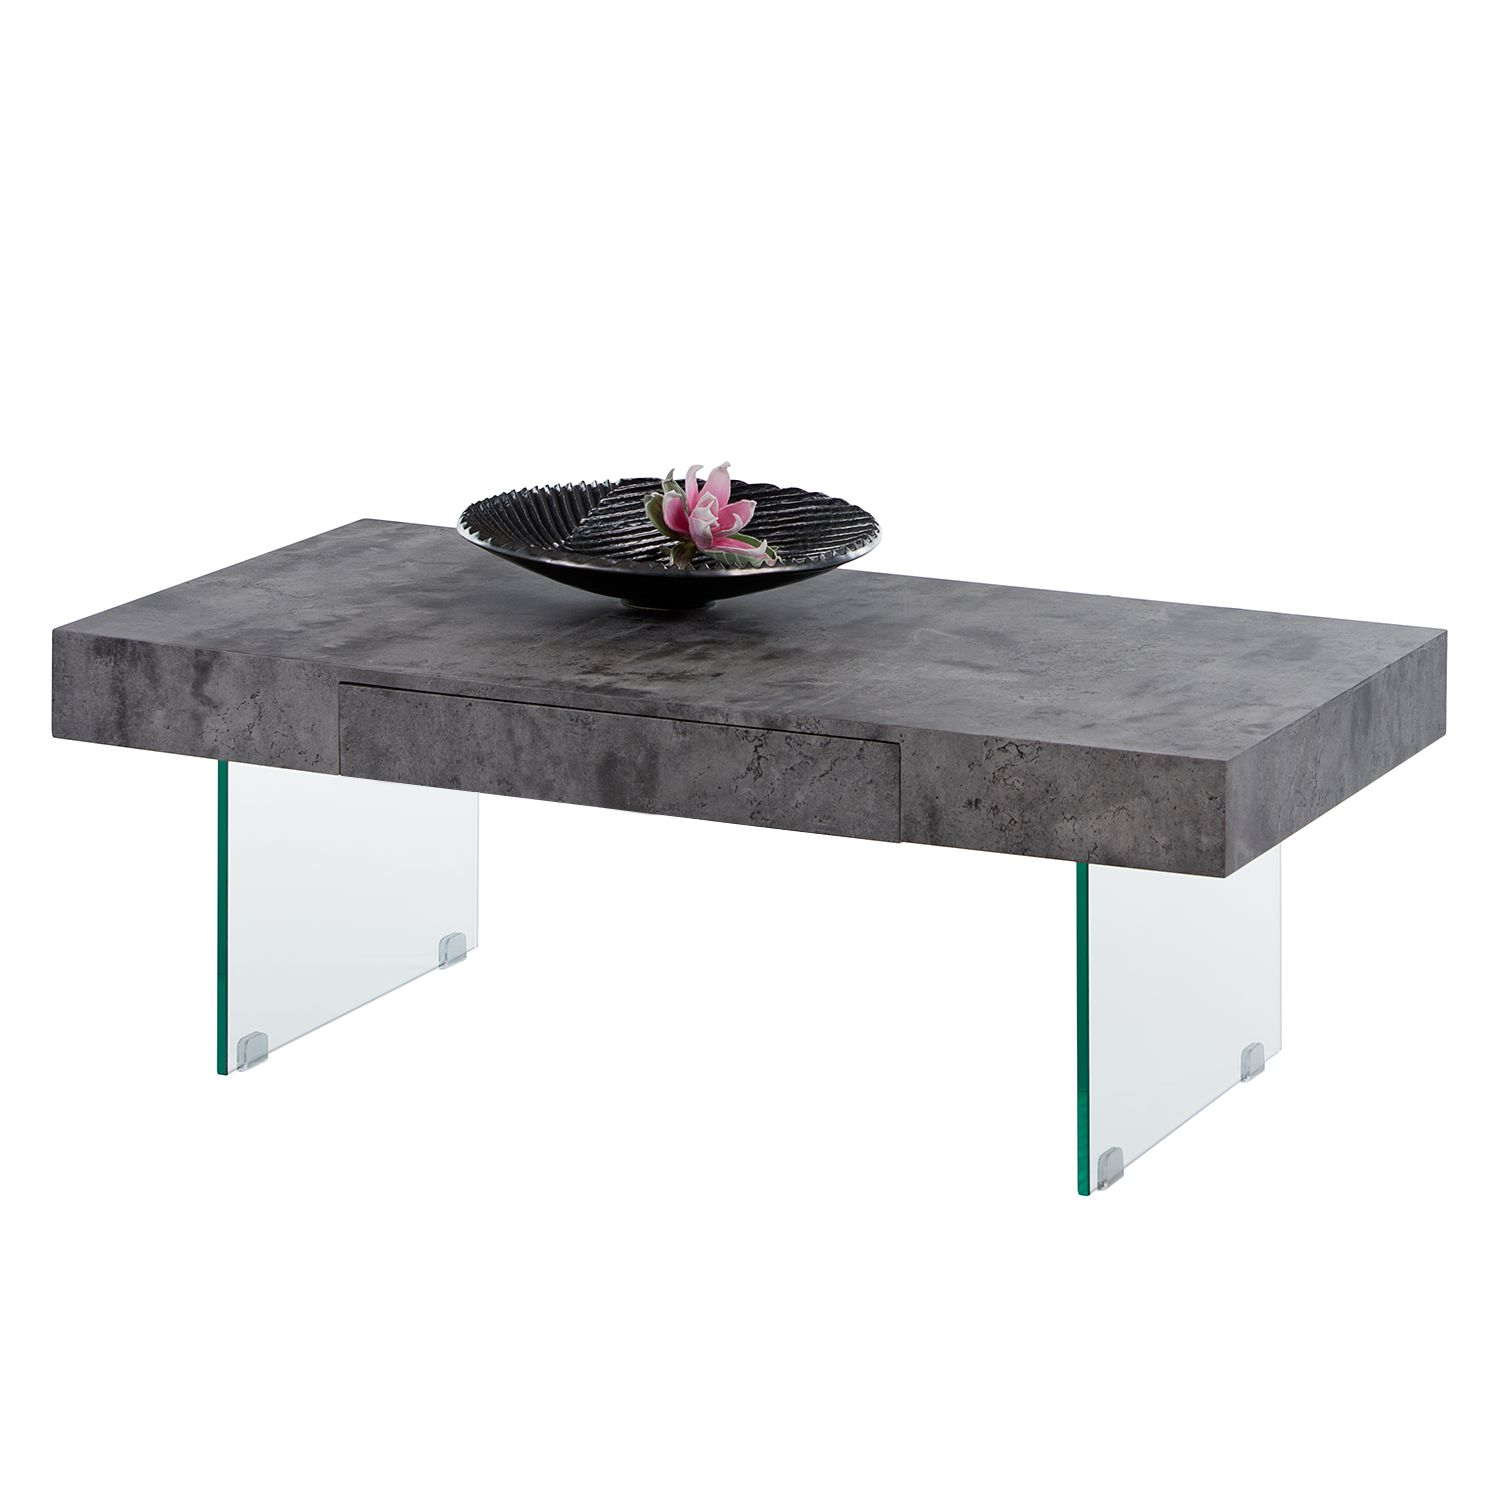 Table basse Dalema - Imitation ardoire, mooved